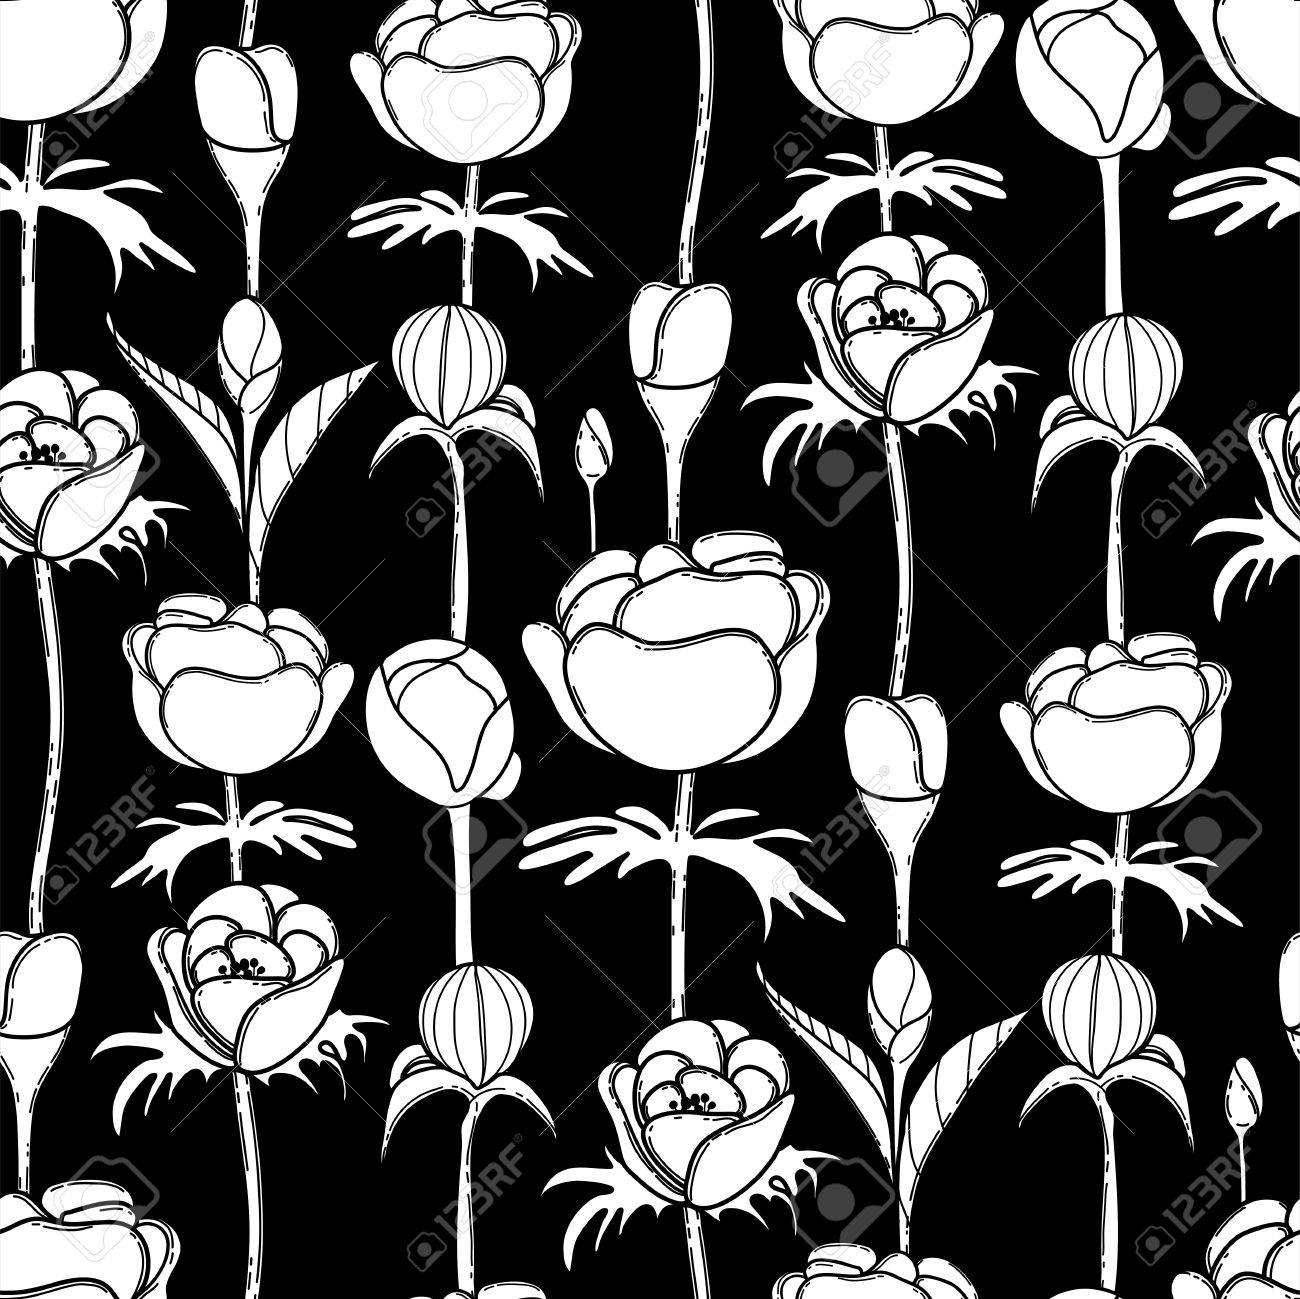 Coloring pages of flower buds - Graphic Flower Buds Vector Seamless Pattern Coloring Page Design For Adults And Kids Stock